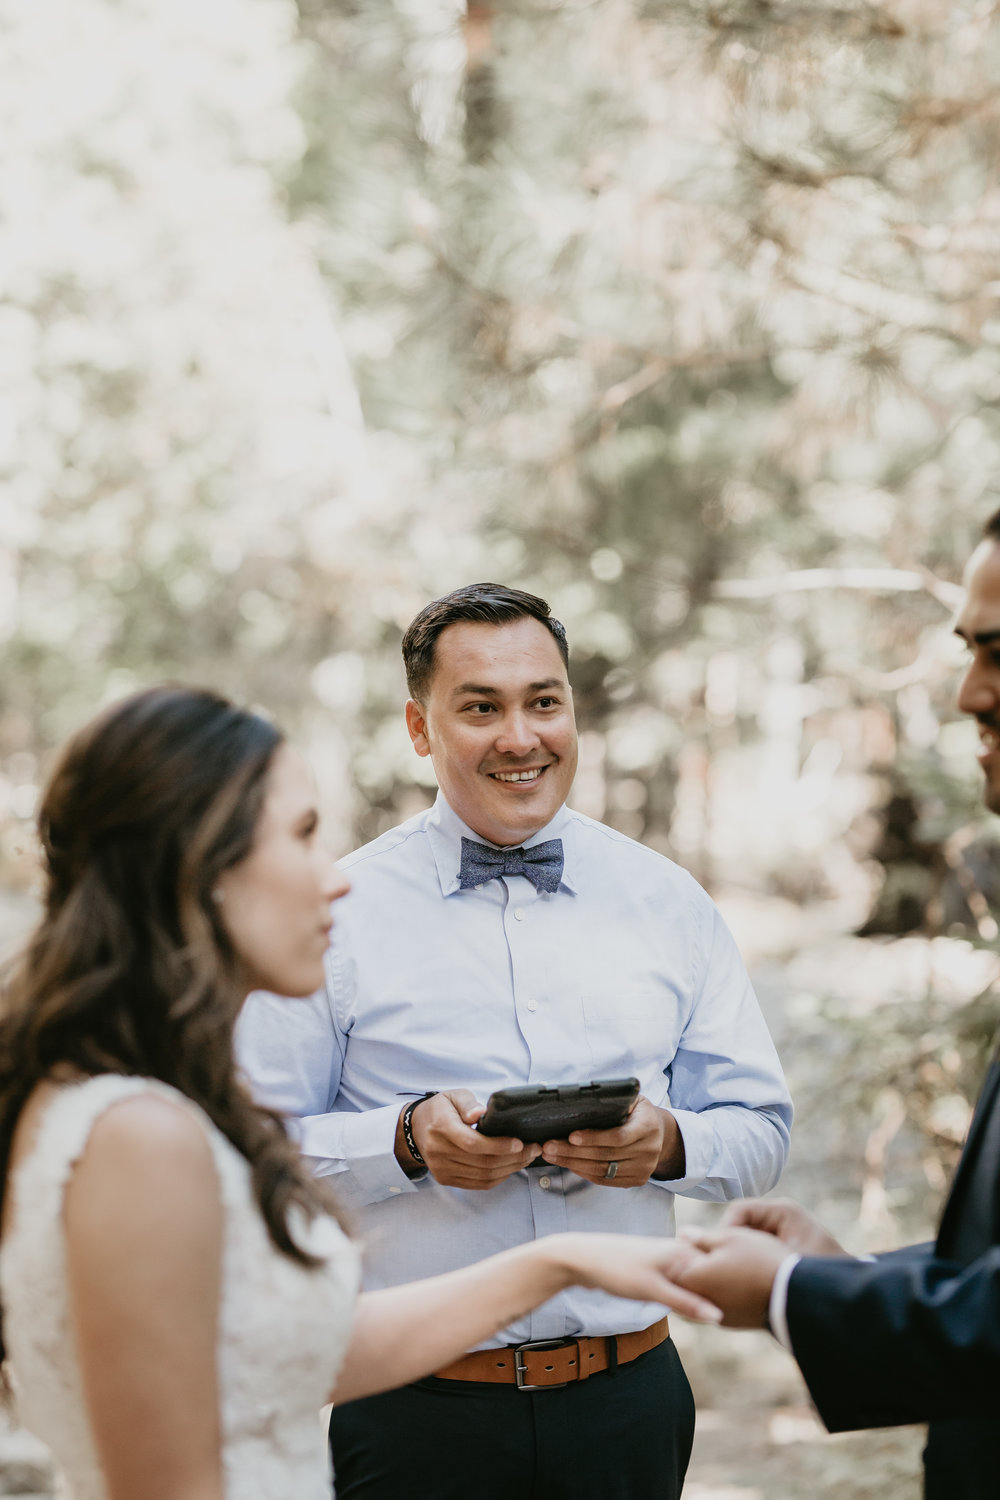 nicole-daacke-photography-intimate-elopement-wedding-yosemite-national-park-california-taft-point-sunset-photos-yosemite-valley-tunnel-view-first-look-sunrise-golden-granite-hiking-adventure-wedding-adventurous-elopement-photographer-51.jpg